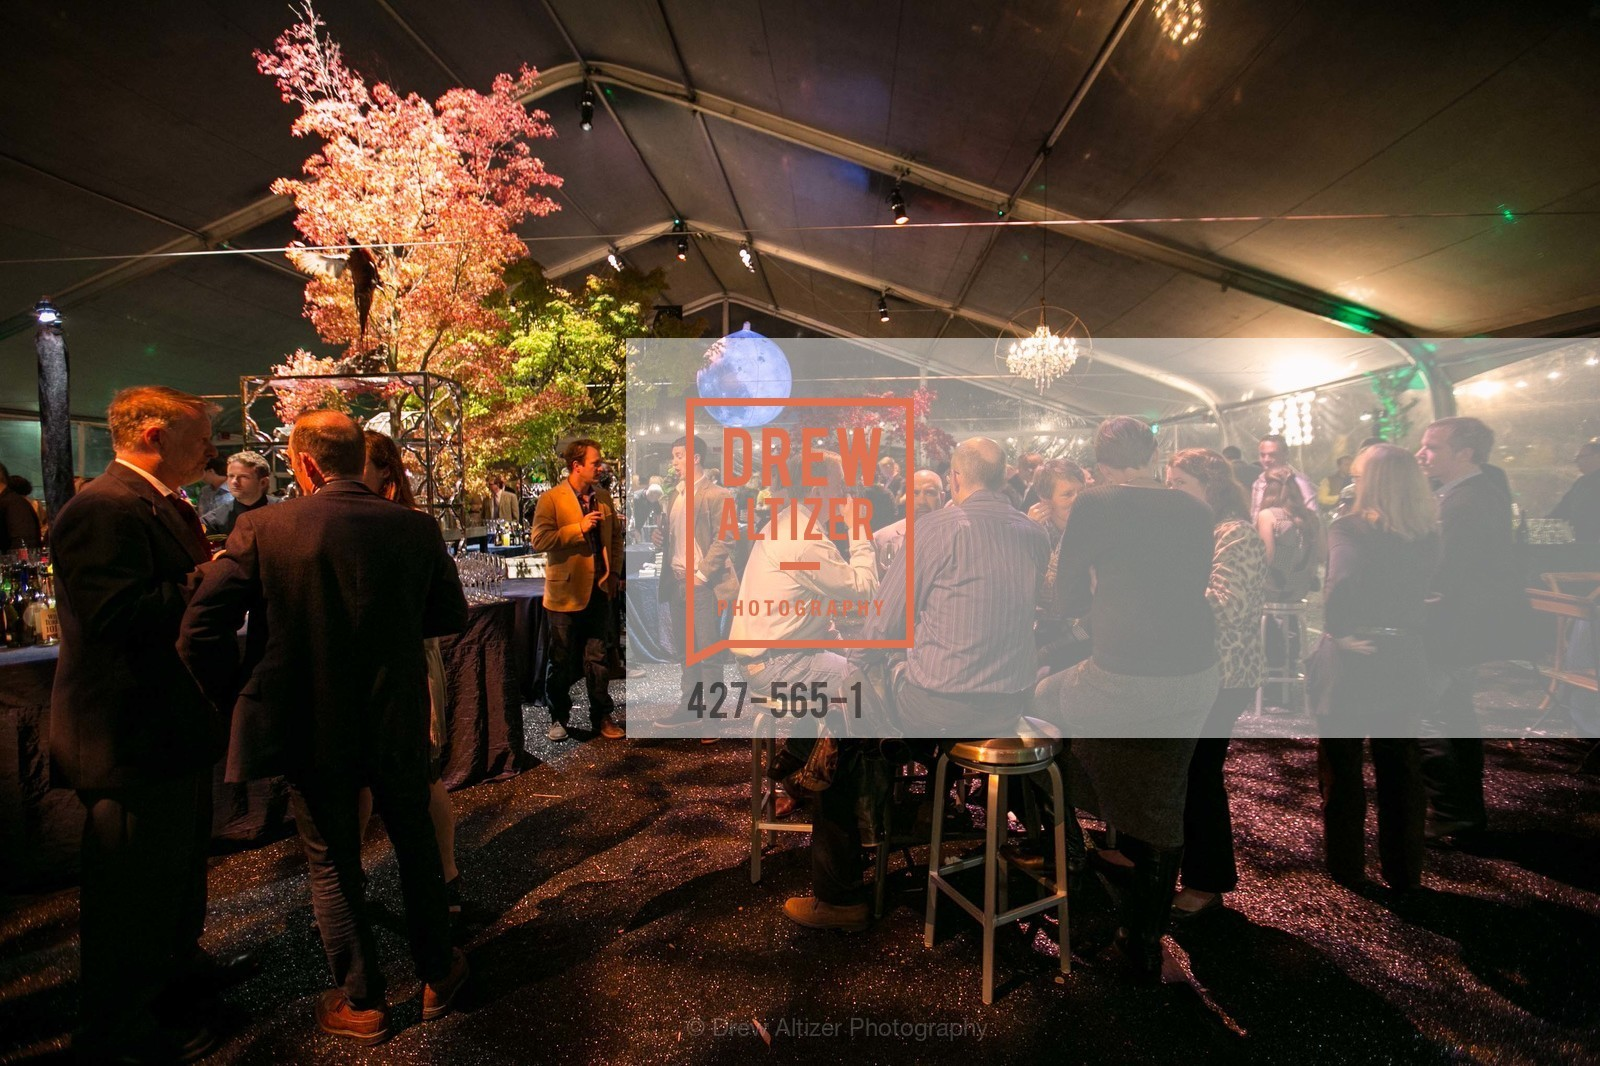 Atmosphere, SAKS FIFTH AVENUE Hosts The GLAAD GALA Kick-Off Party, US, September 12th, 2014,Drew Altizer, Drew Altizer Photography, full-service agency, private events, San Francisco photographer, photographer california